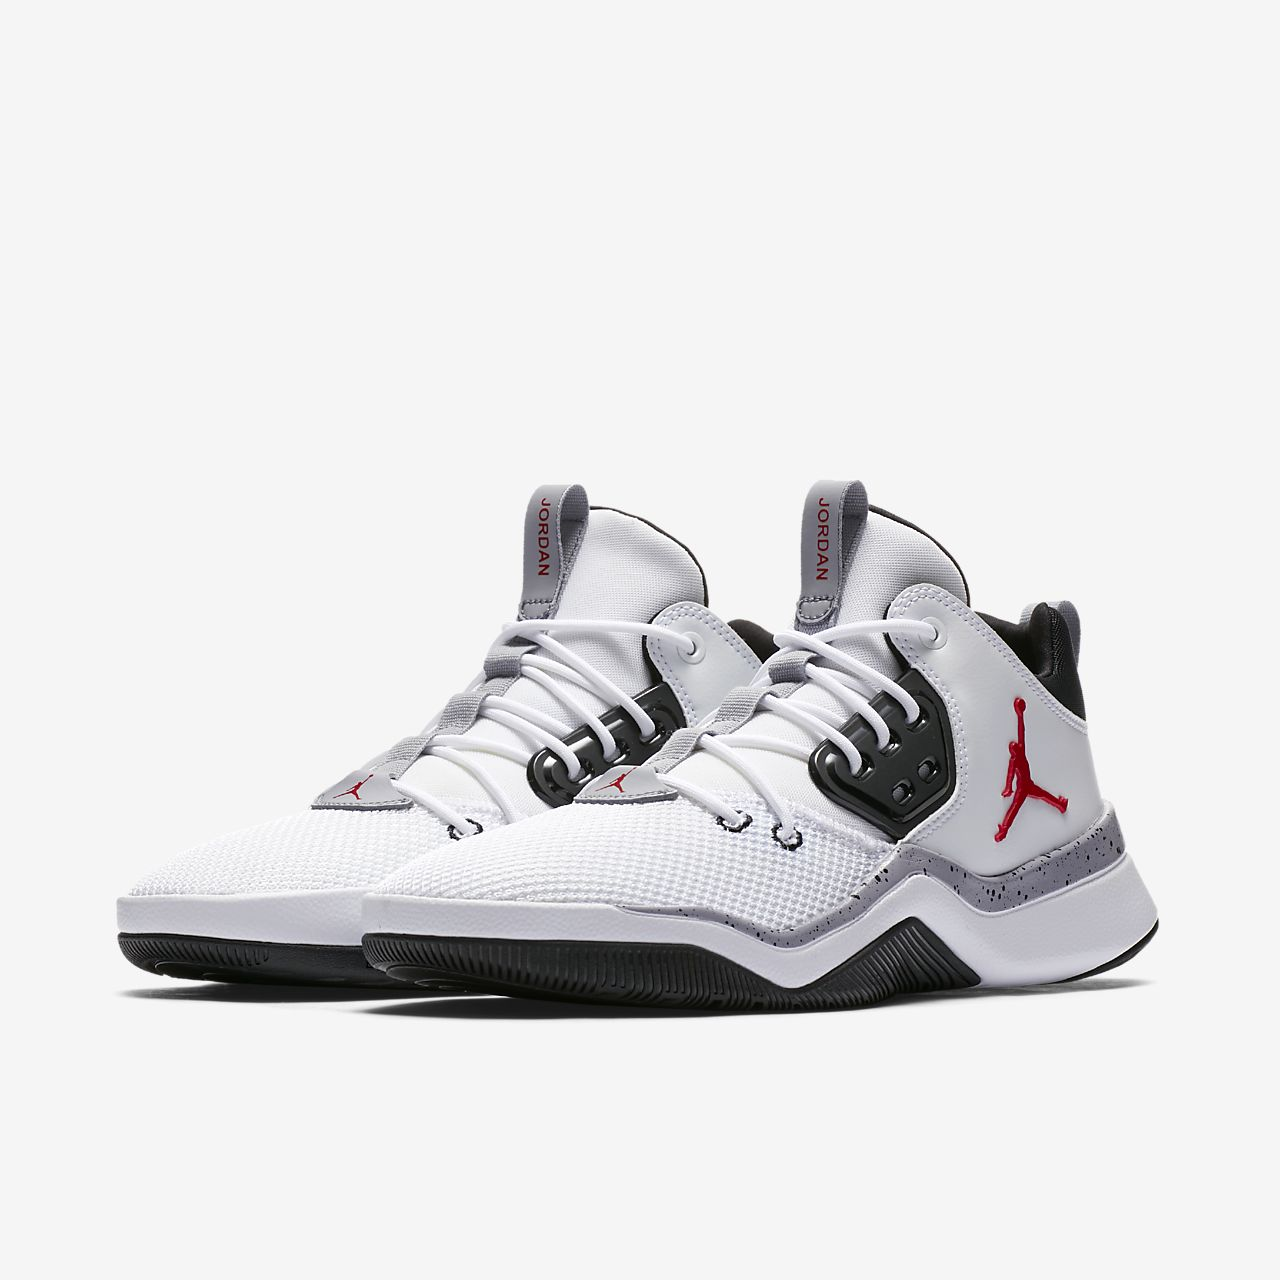 7a048728df3 Low Resolution Jordan DNA Men s Shoe Jordan DNA Men s Shoe